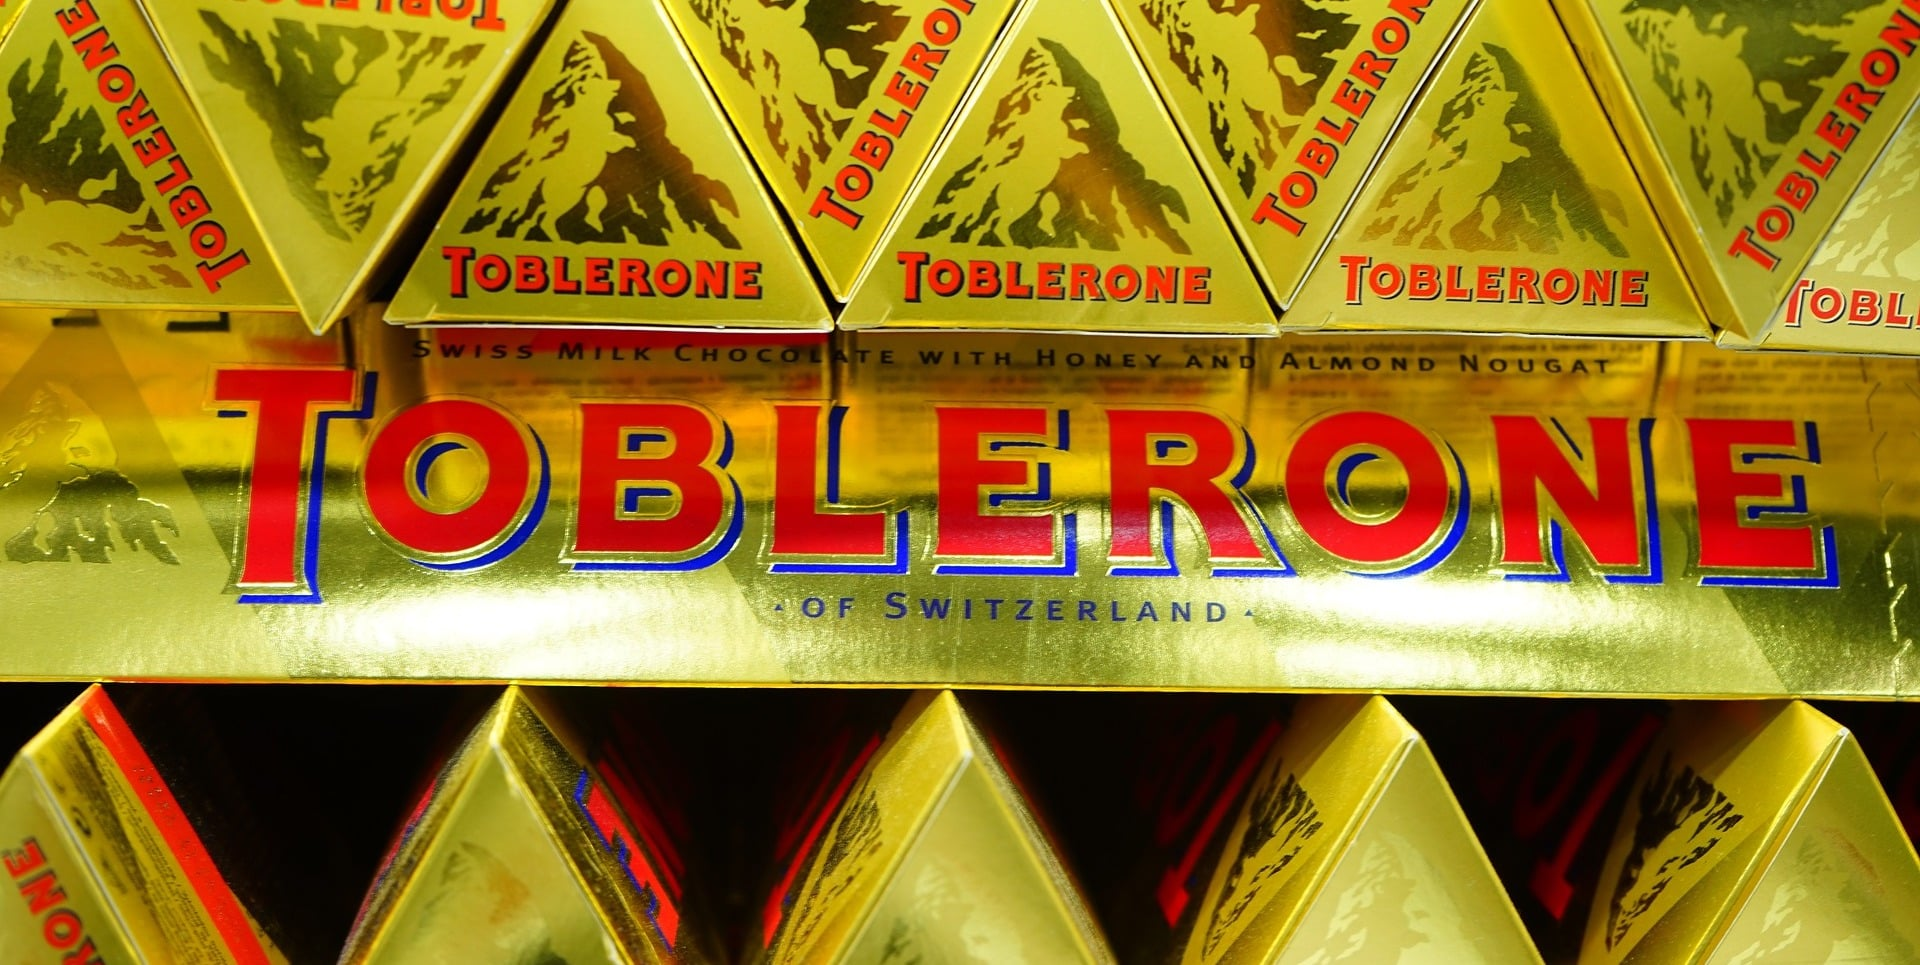 Where is Toblerone Made?